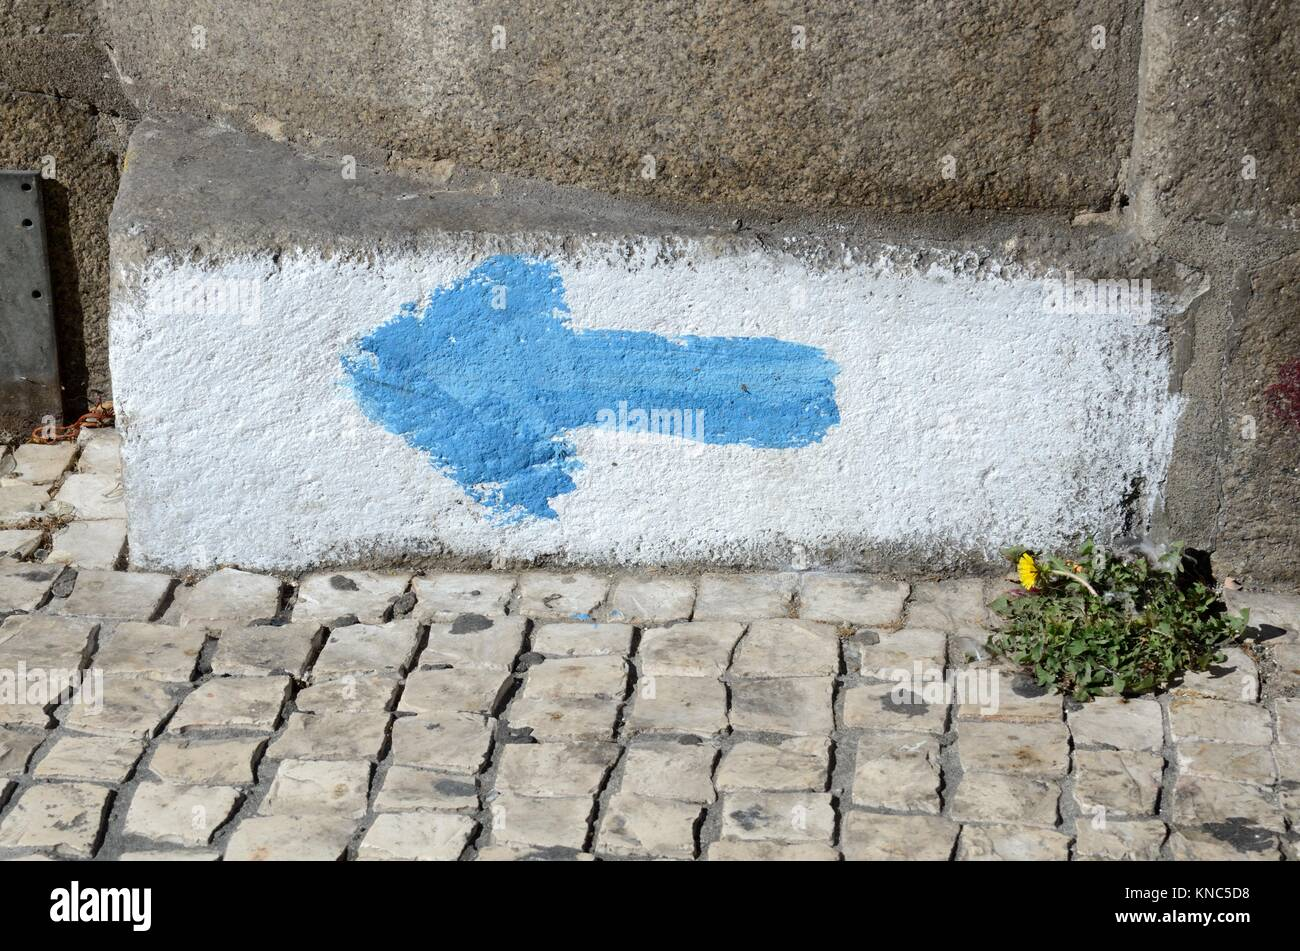 Blue arrow on a wall in Porto indicating the pilgrimage route of Fatima Pilgrimage to Fatima Portugal - Stock Image